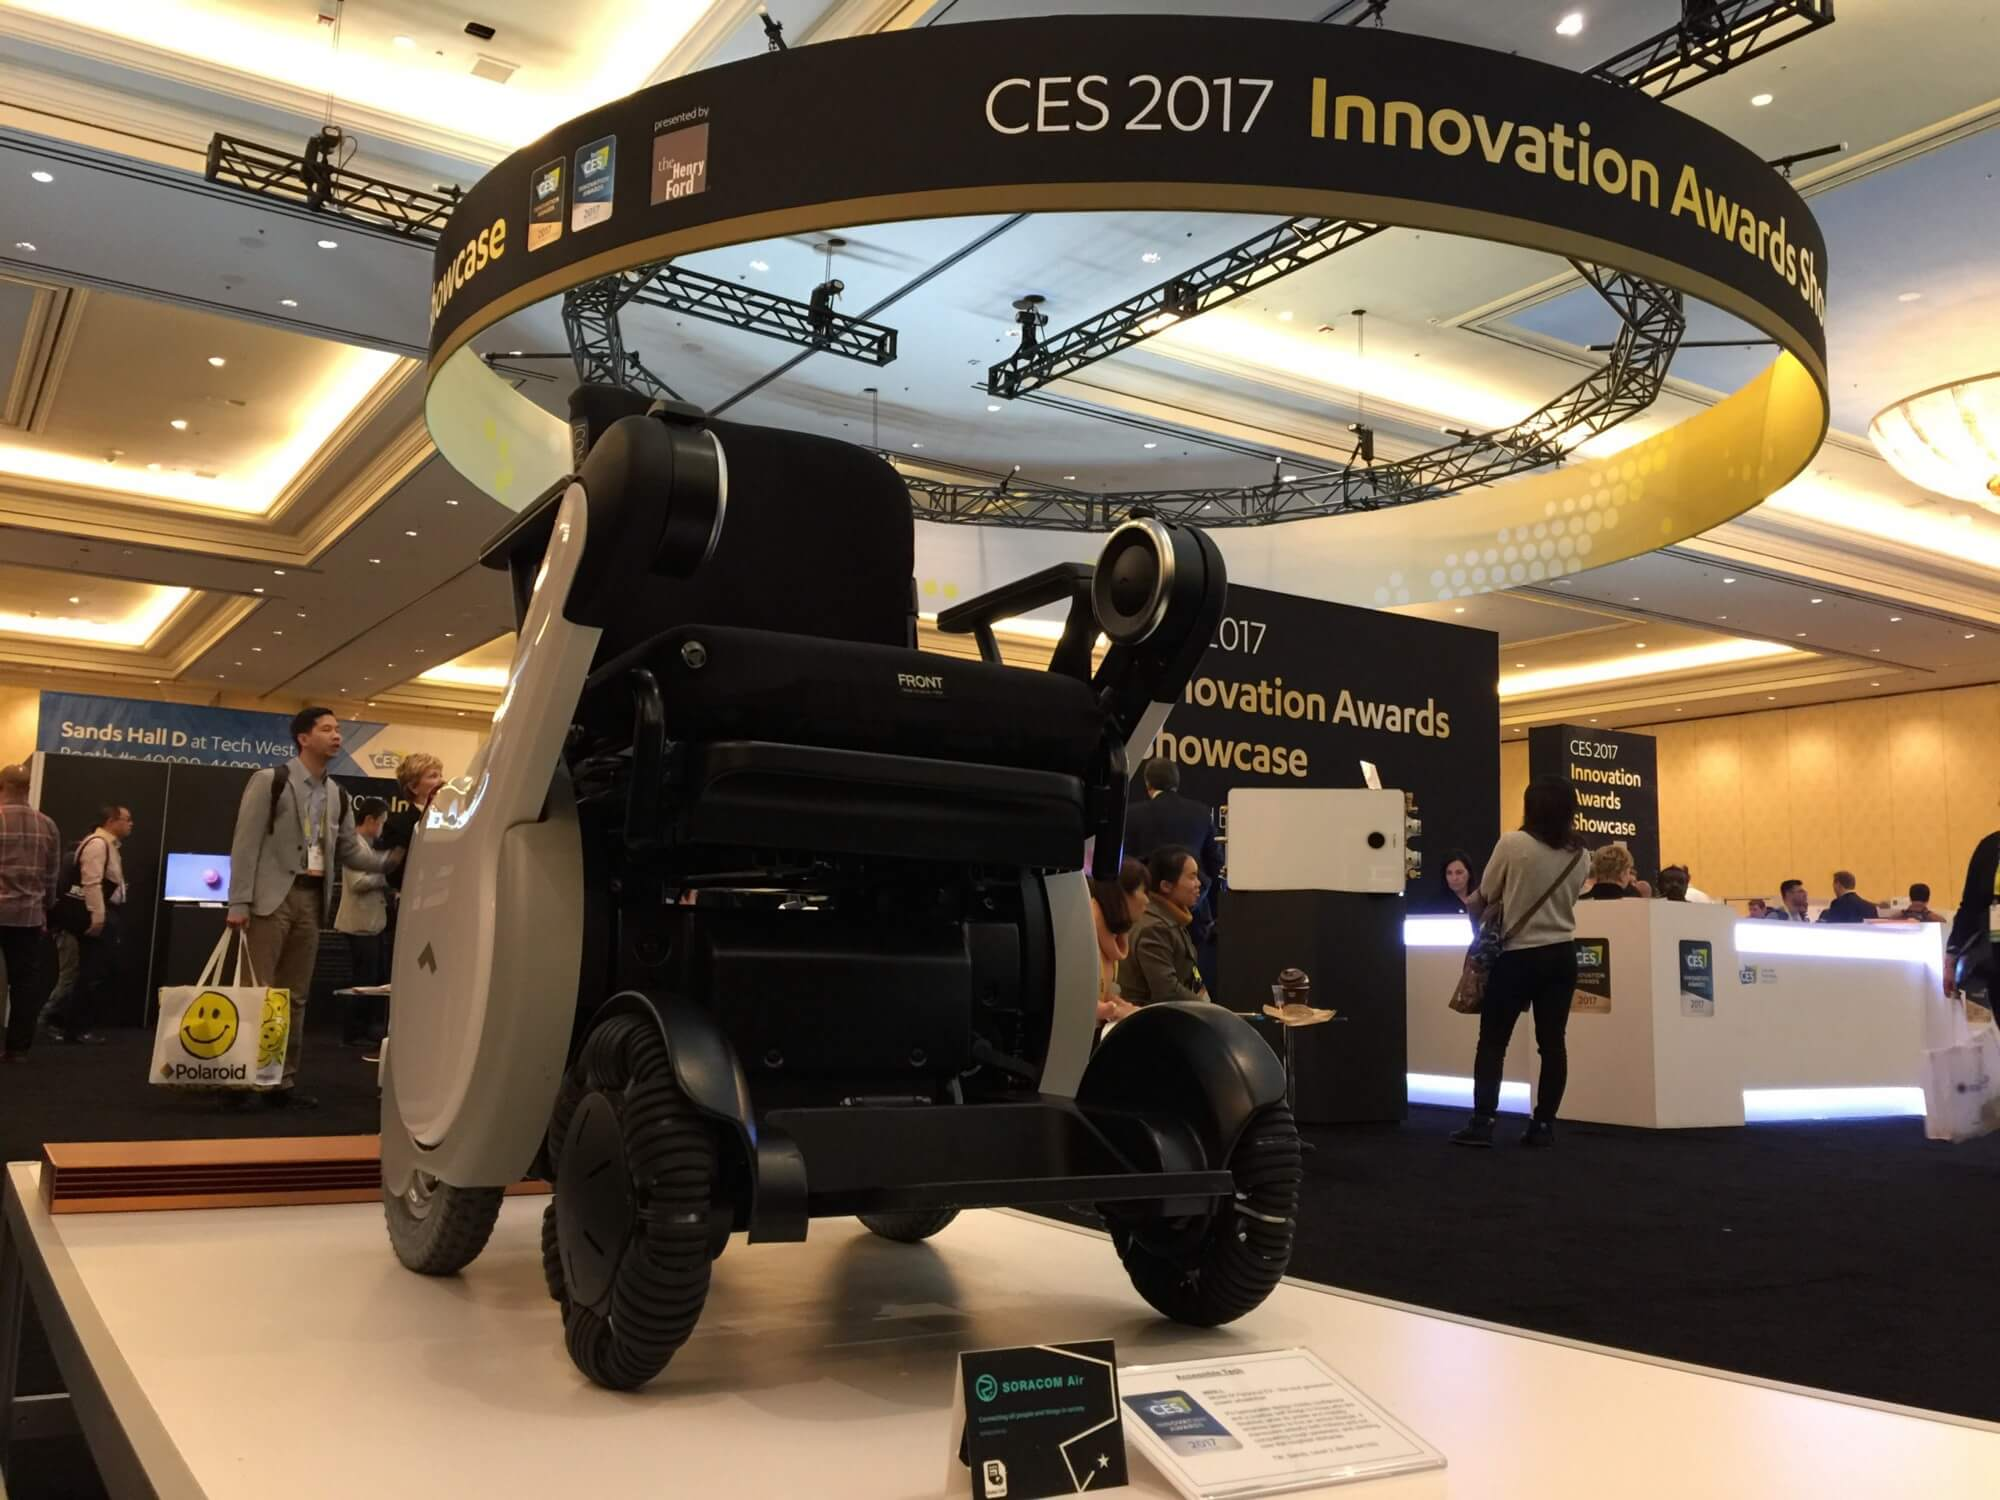 WHILL — The electric connected wheelchair